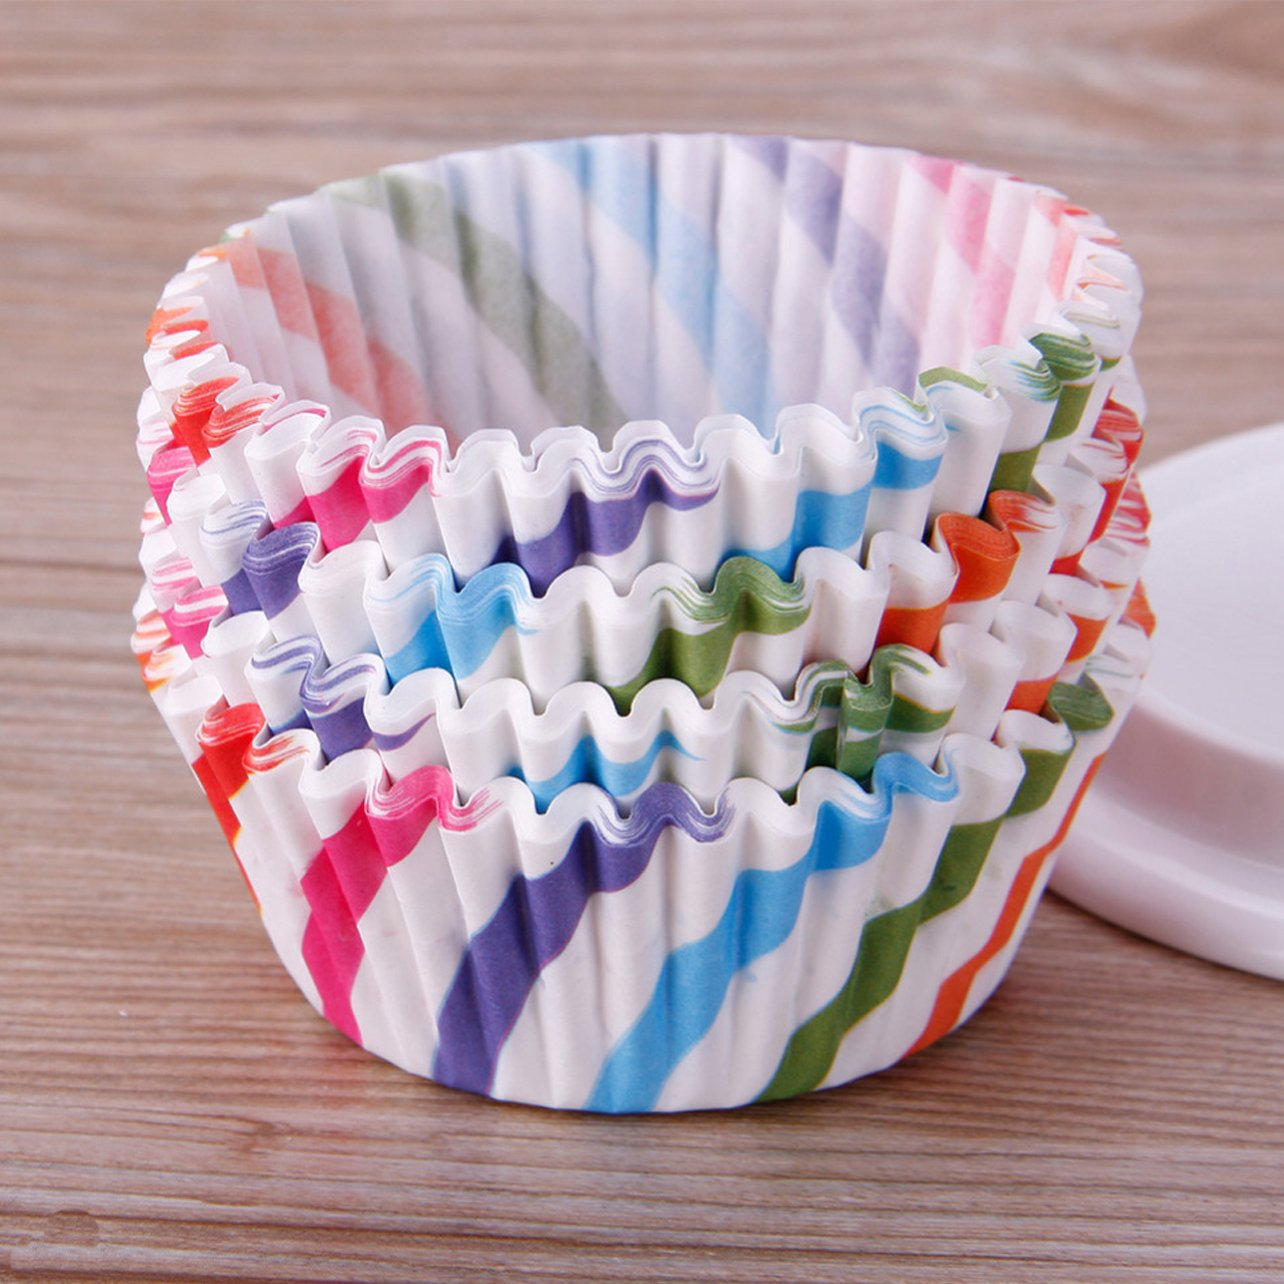 300 Pcs Paper Cupcake Holder Liners Wrappers Baking Cups Standard Disposable Baking Supplies (300-Count 6 Style Colorful Stripe)